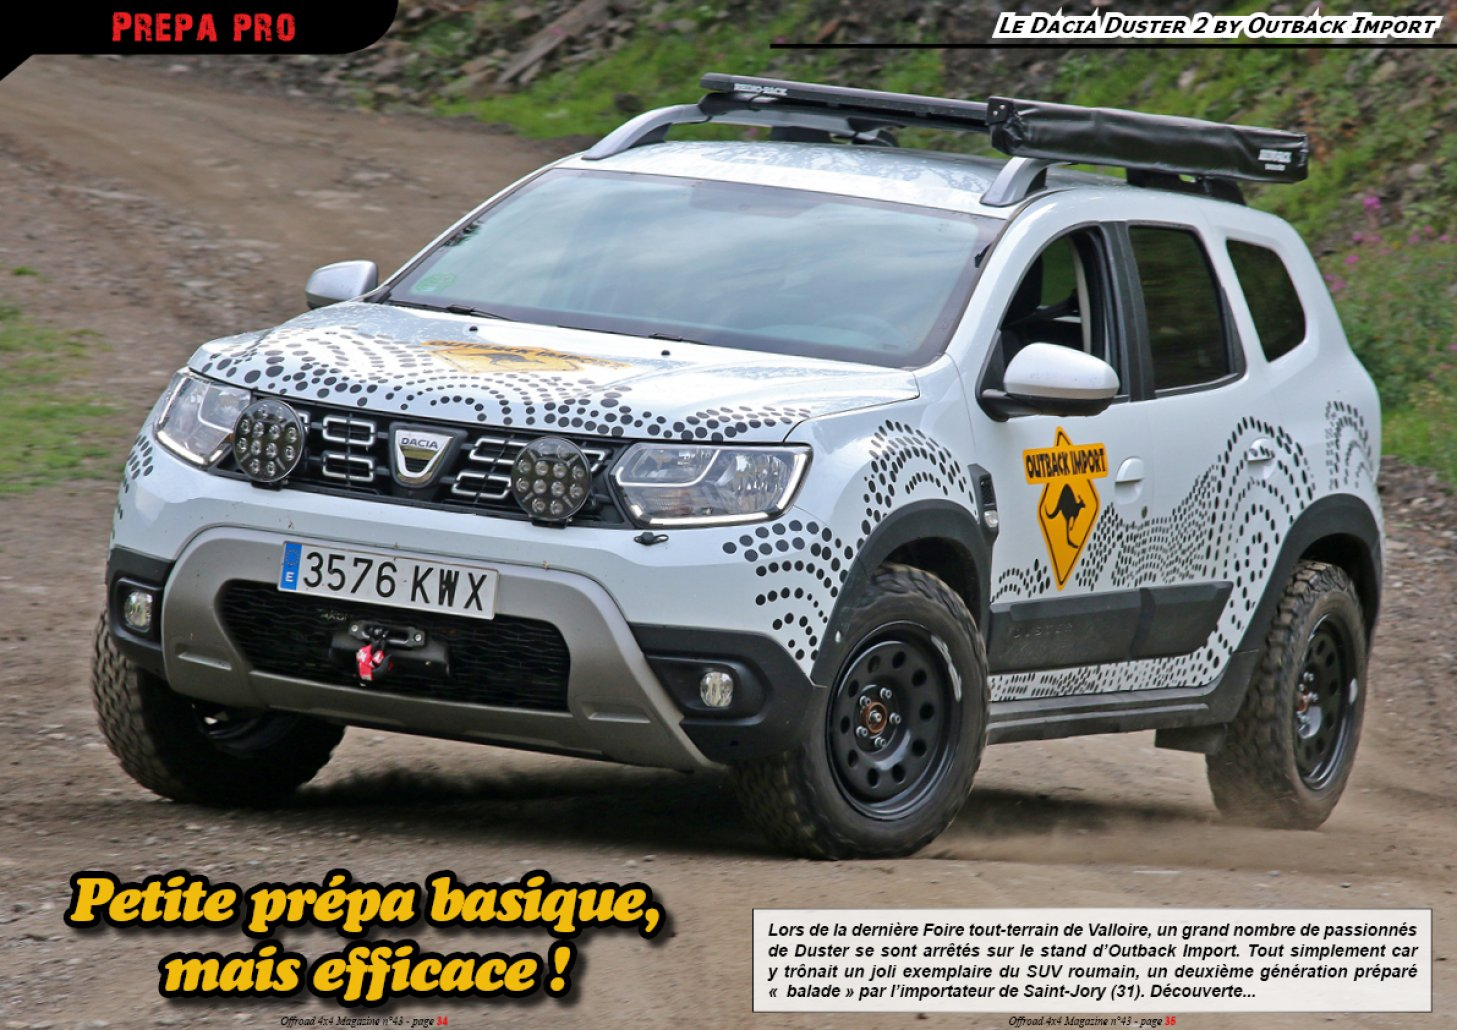 Le Dacia Duster 2 by Outback Import